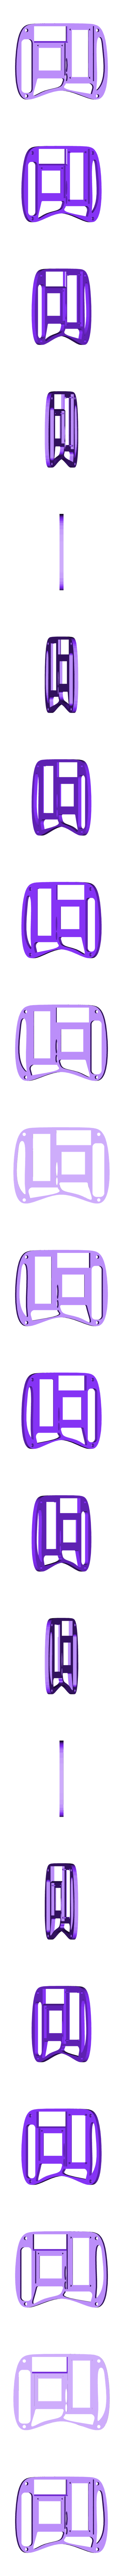 Gamepad_V1r8_Button_Carrier.stl Download free STL file Vorpal Combat Hexapod Robot • 3D printable template, pend